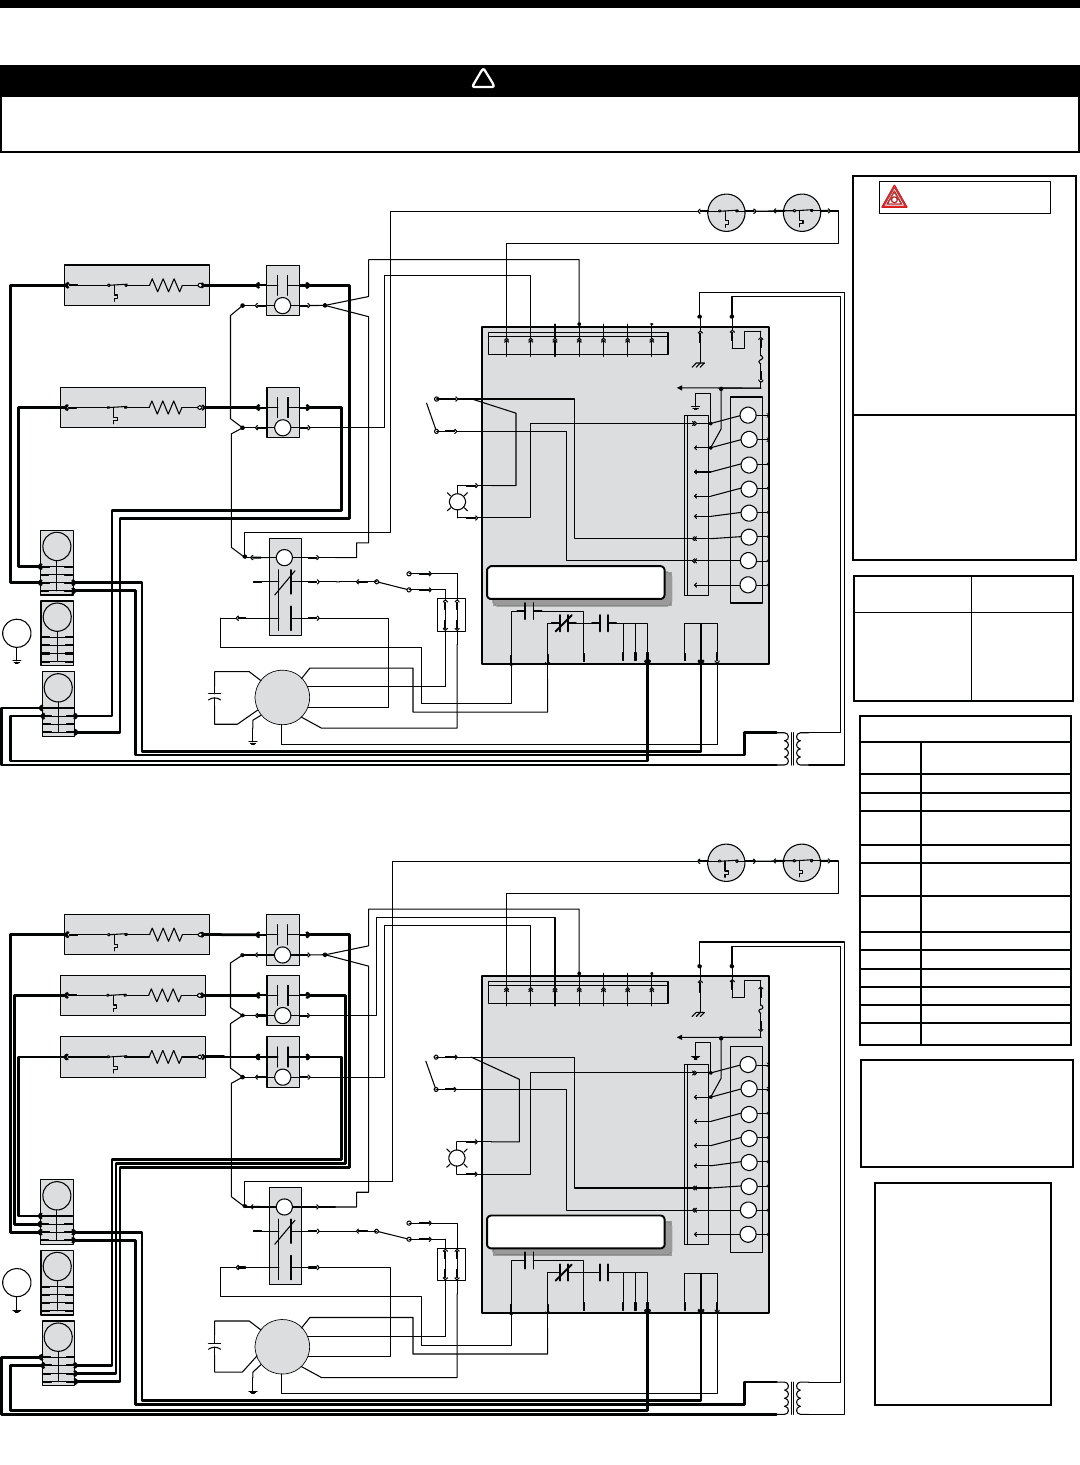 Broan Electric Furnace Wiring Diagram Trusted Diagrams Eb15d Coleman Evcon Page 7 Of D Series User Guide York